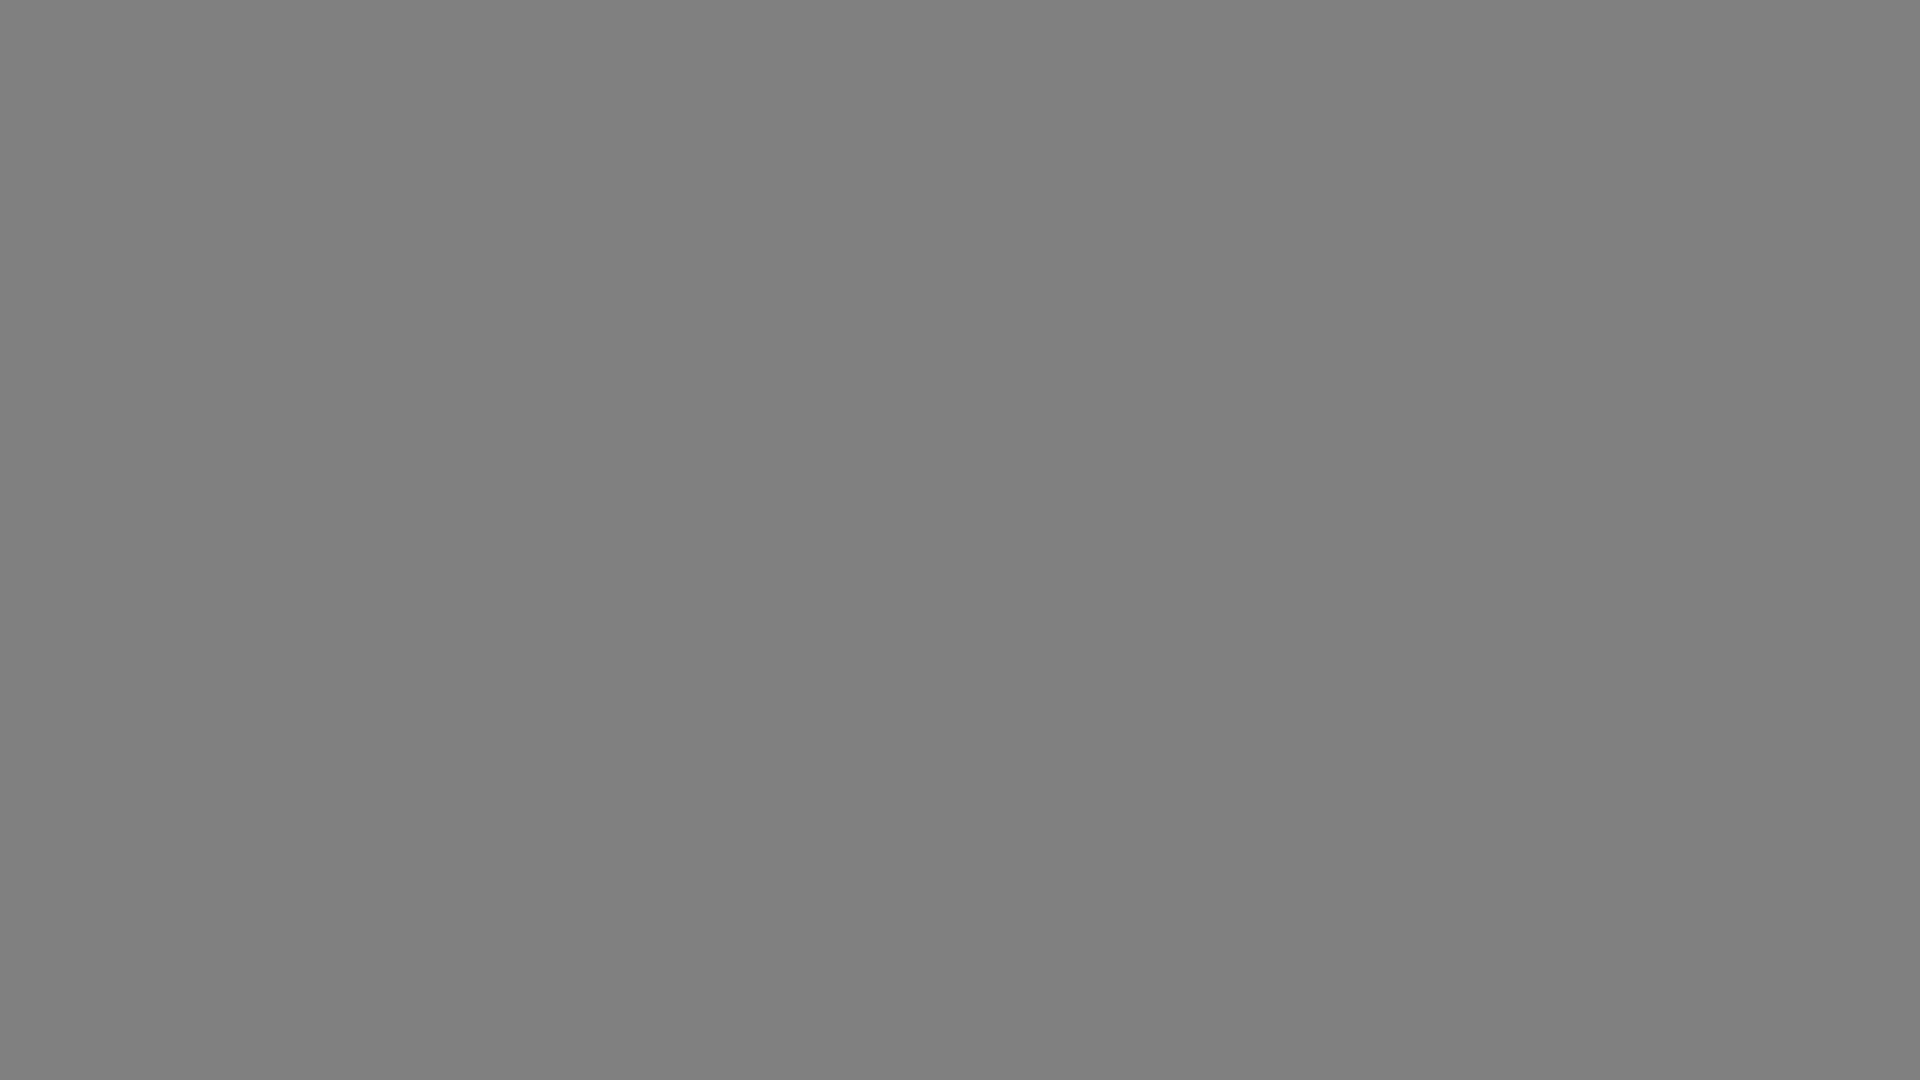 1920x1080 Gray Web Gray Solid Color Background